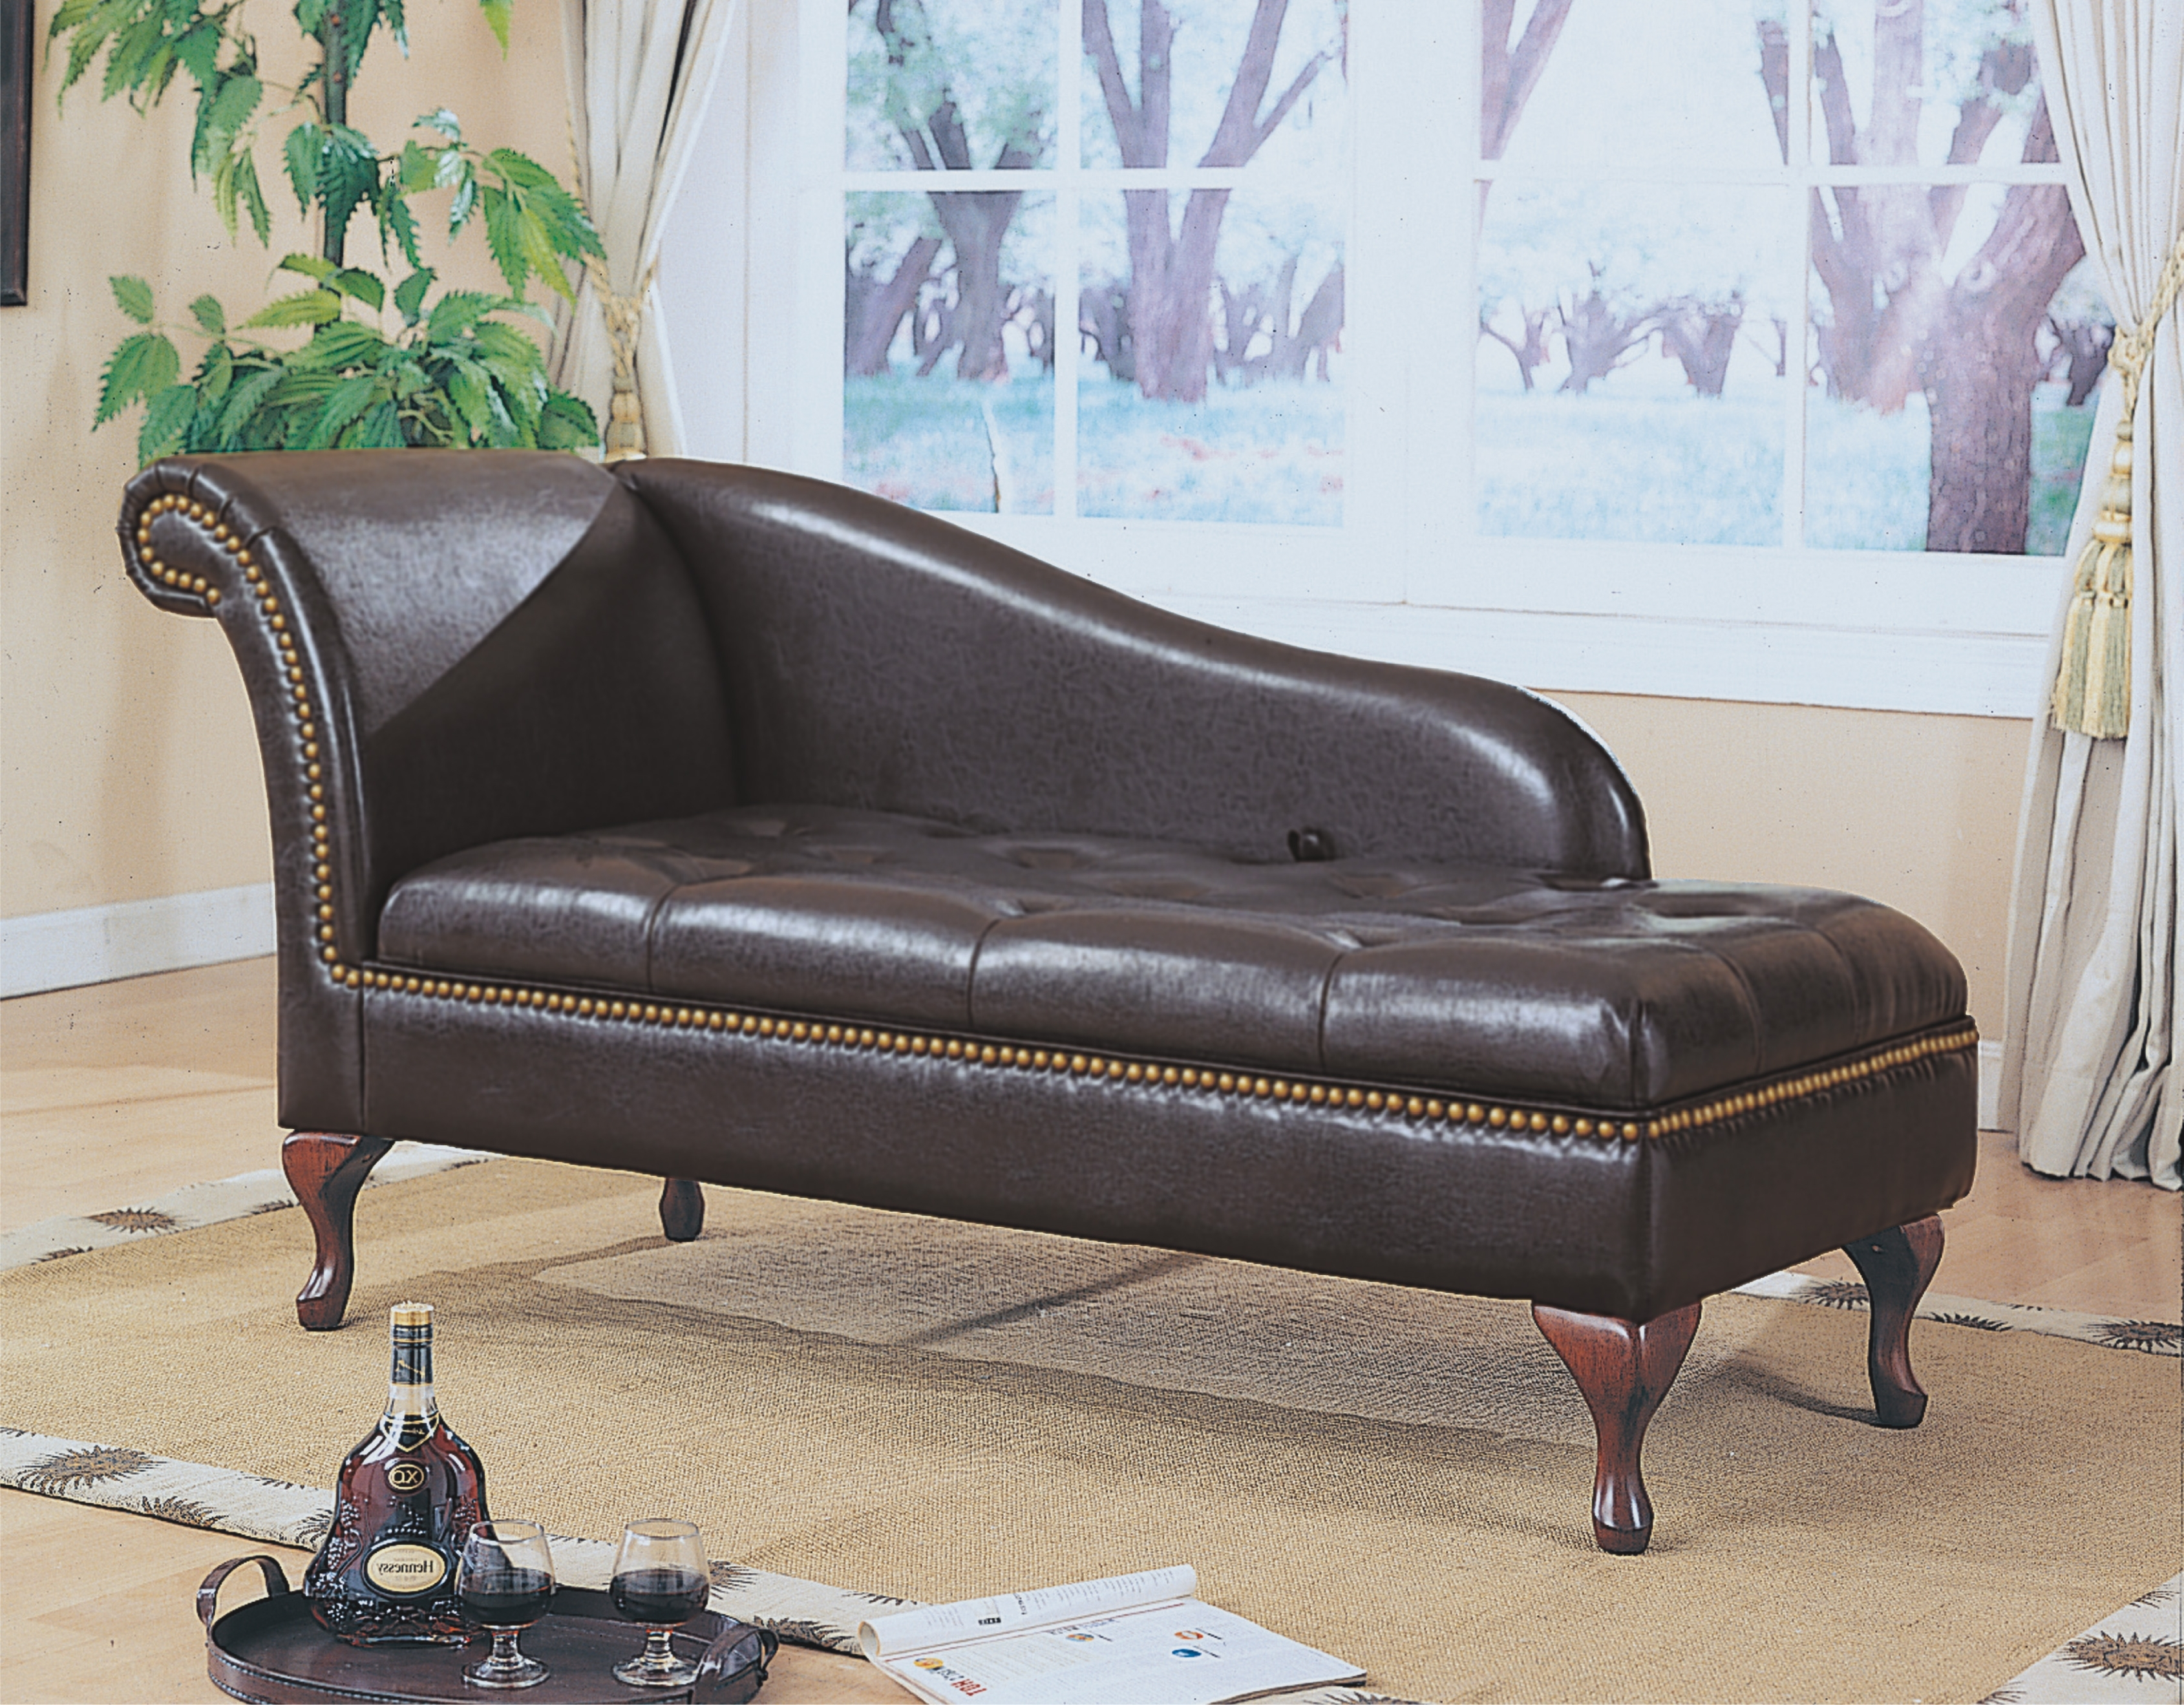 Dark Brown Leather Sofa Chaise Lounge With Curving Headboard And Intended For Trendy Brown Chaise Lounges (View 8 of 15)